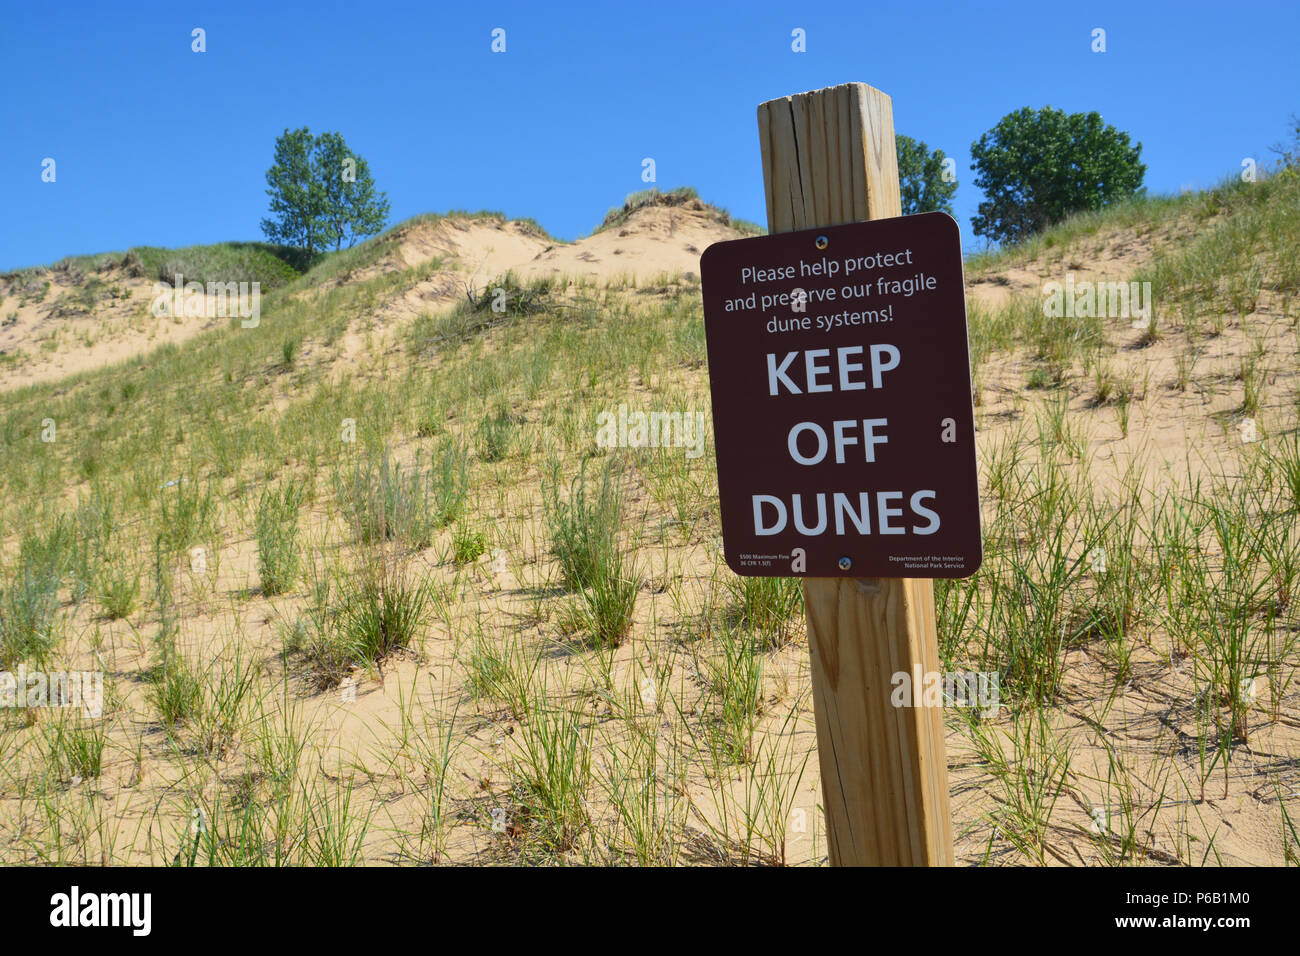 The Mount Baldy dune at Indiana Dunes National Park is closed to visitors due to sinkholes and to conserve the dune grasses. - Stock Image